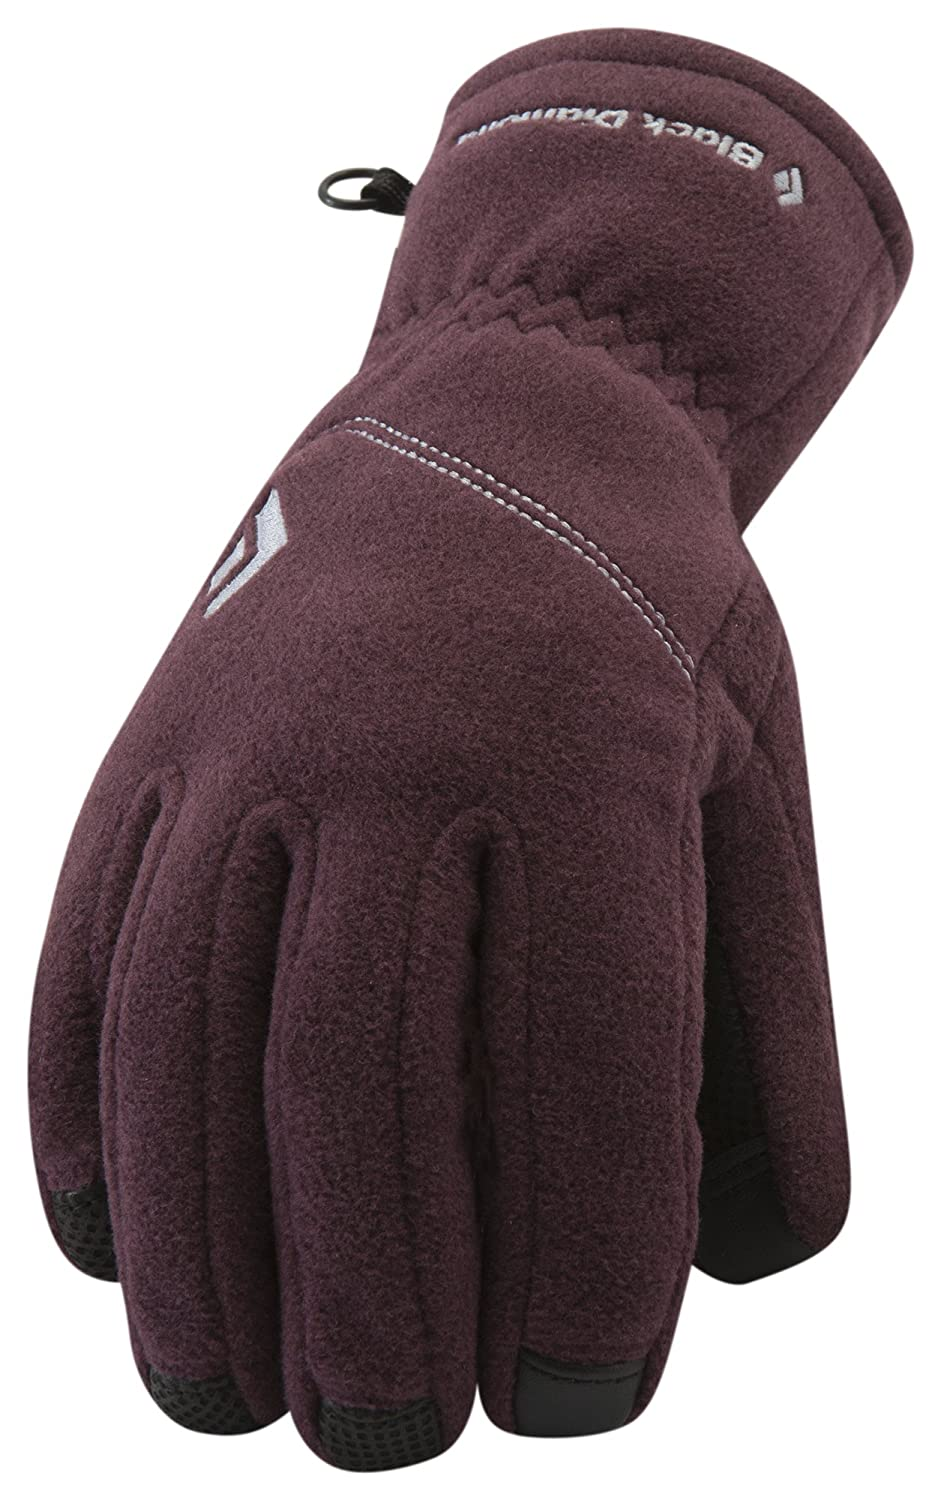 Black Diamond Women's Wind Weight Glove Liners Black Diamond Equipment LTD 801088